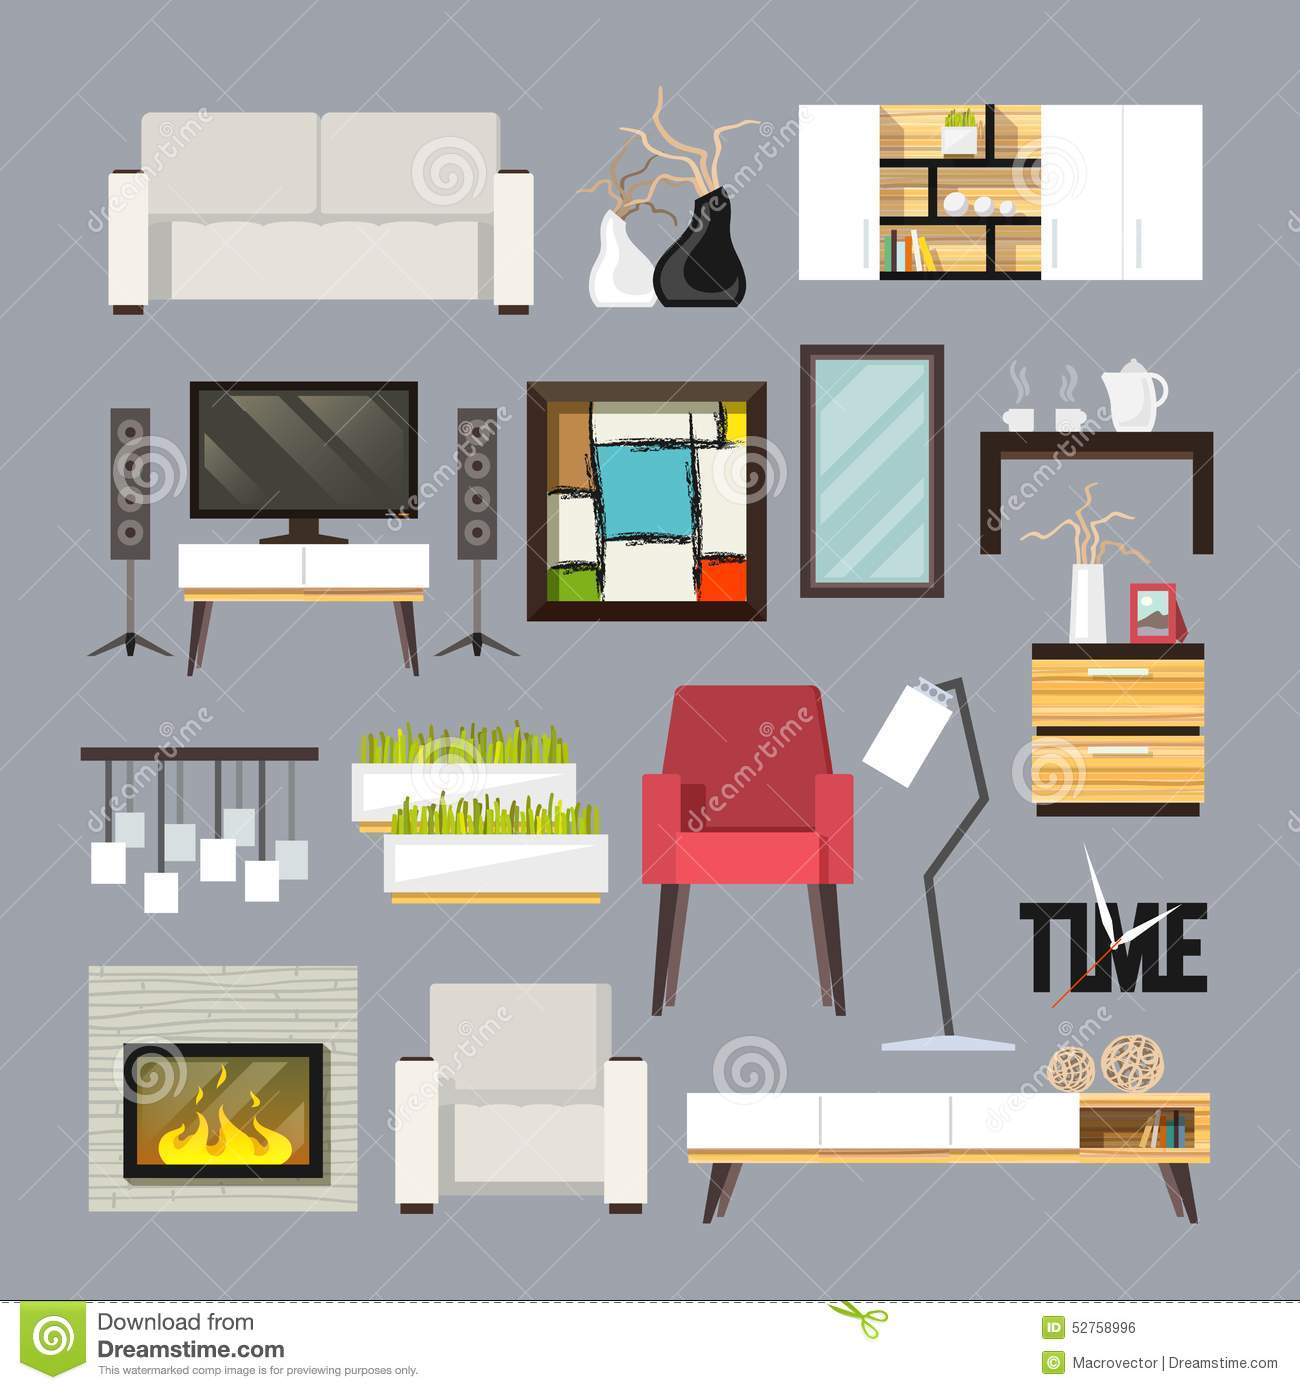 Living room furniture set stock vector illustration of for 15x15 living room